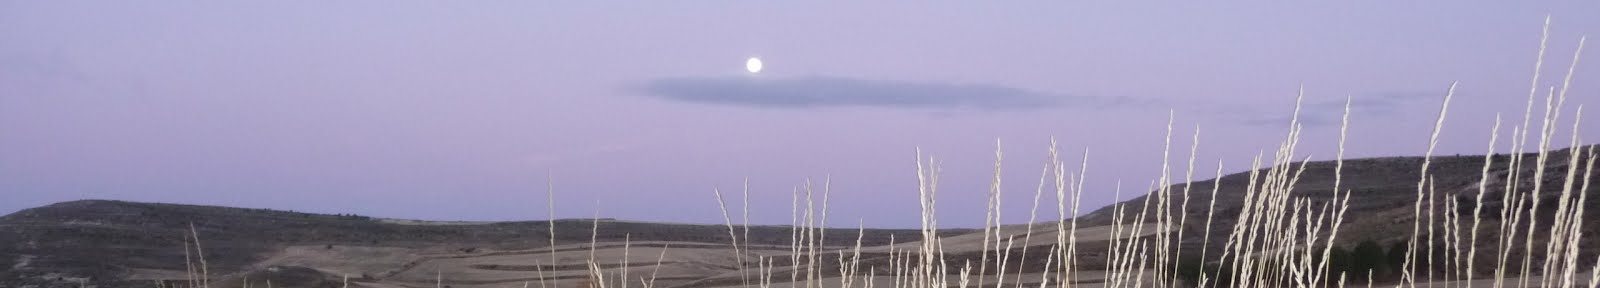 Moonset on the Meseta